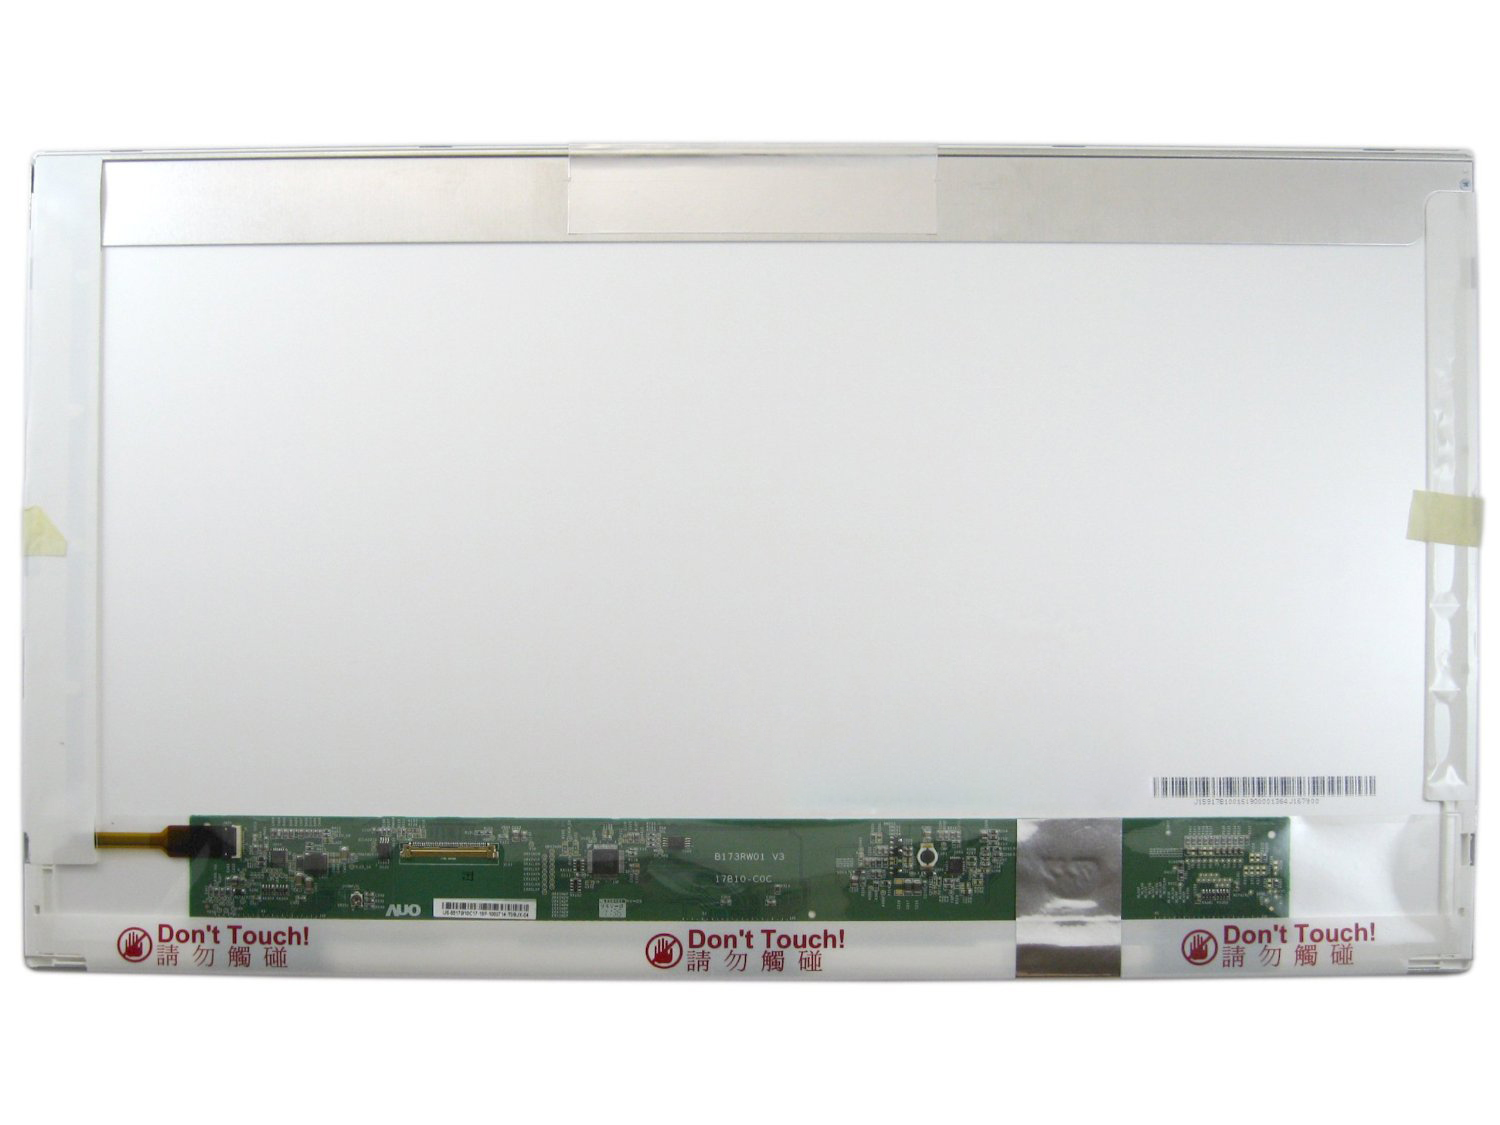 QuYing Laptop Lcd Screen for ASUS N76VZ N76VZ-DS71 N76VZ-V4G N76VZ-QH71 N76VZ-QB71 N76VZ-DH71 (17.3 inch, 1920x1080, Thick)